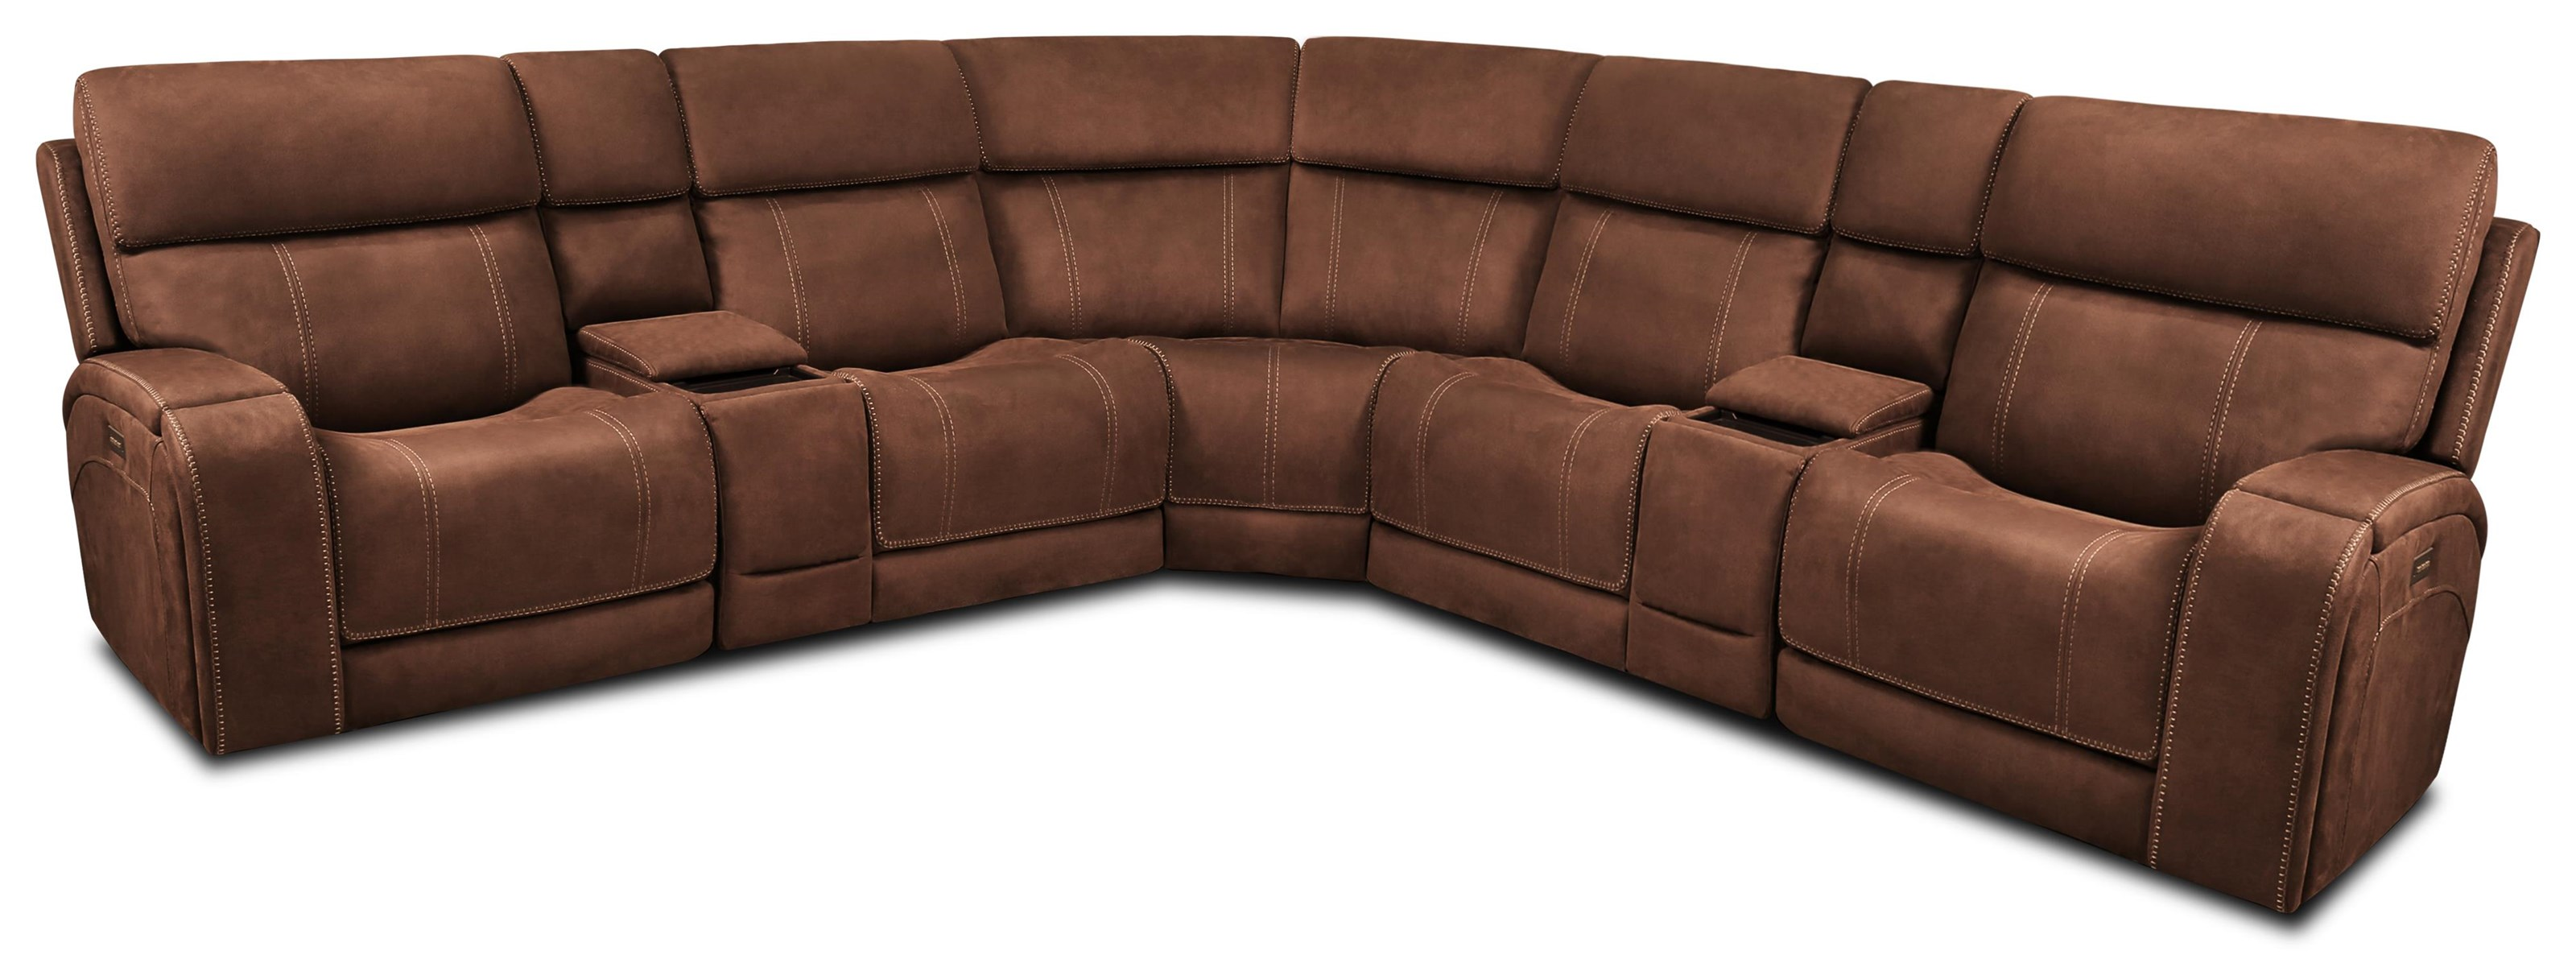 462 Sectional 6 Pc Triple Power Sectional by Moto Motion at Furniture Fair - North Carolina